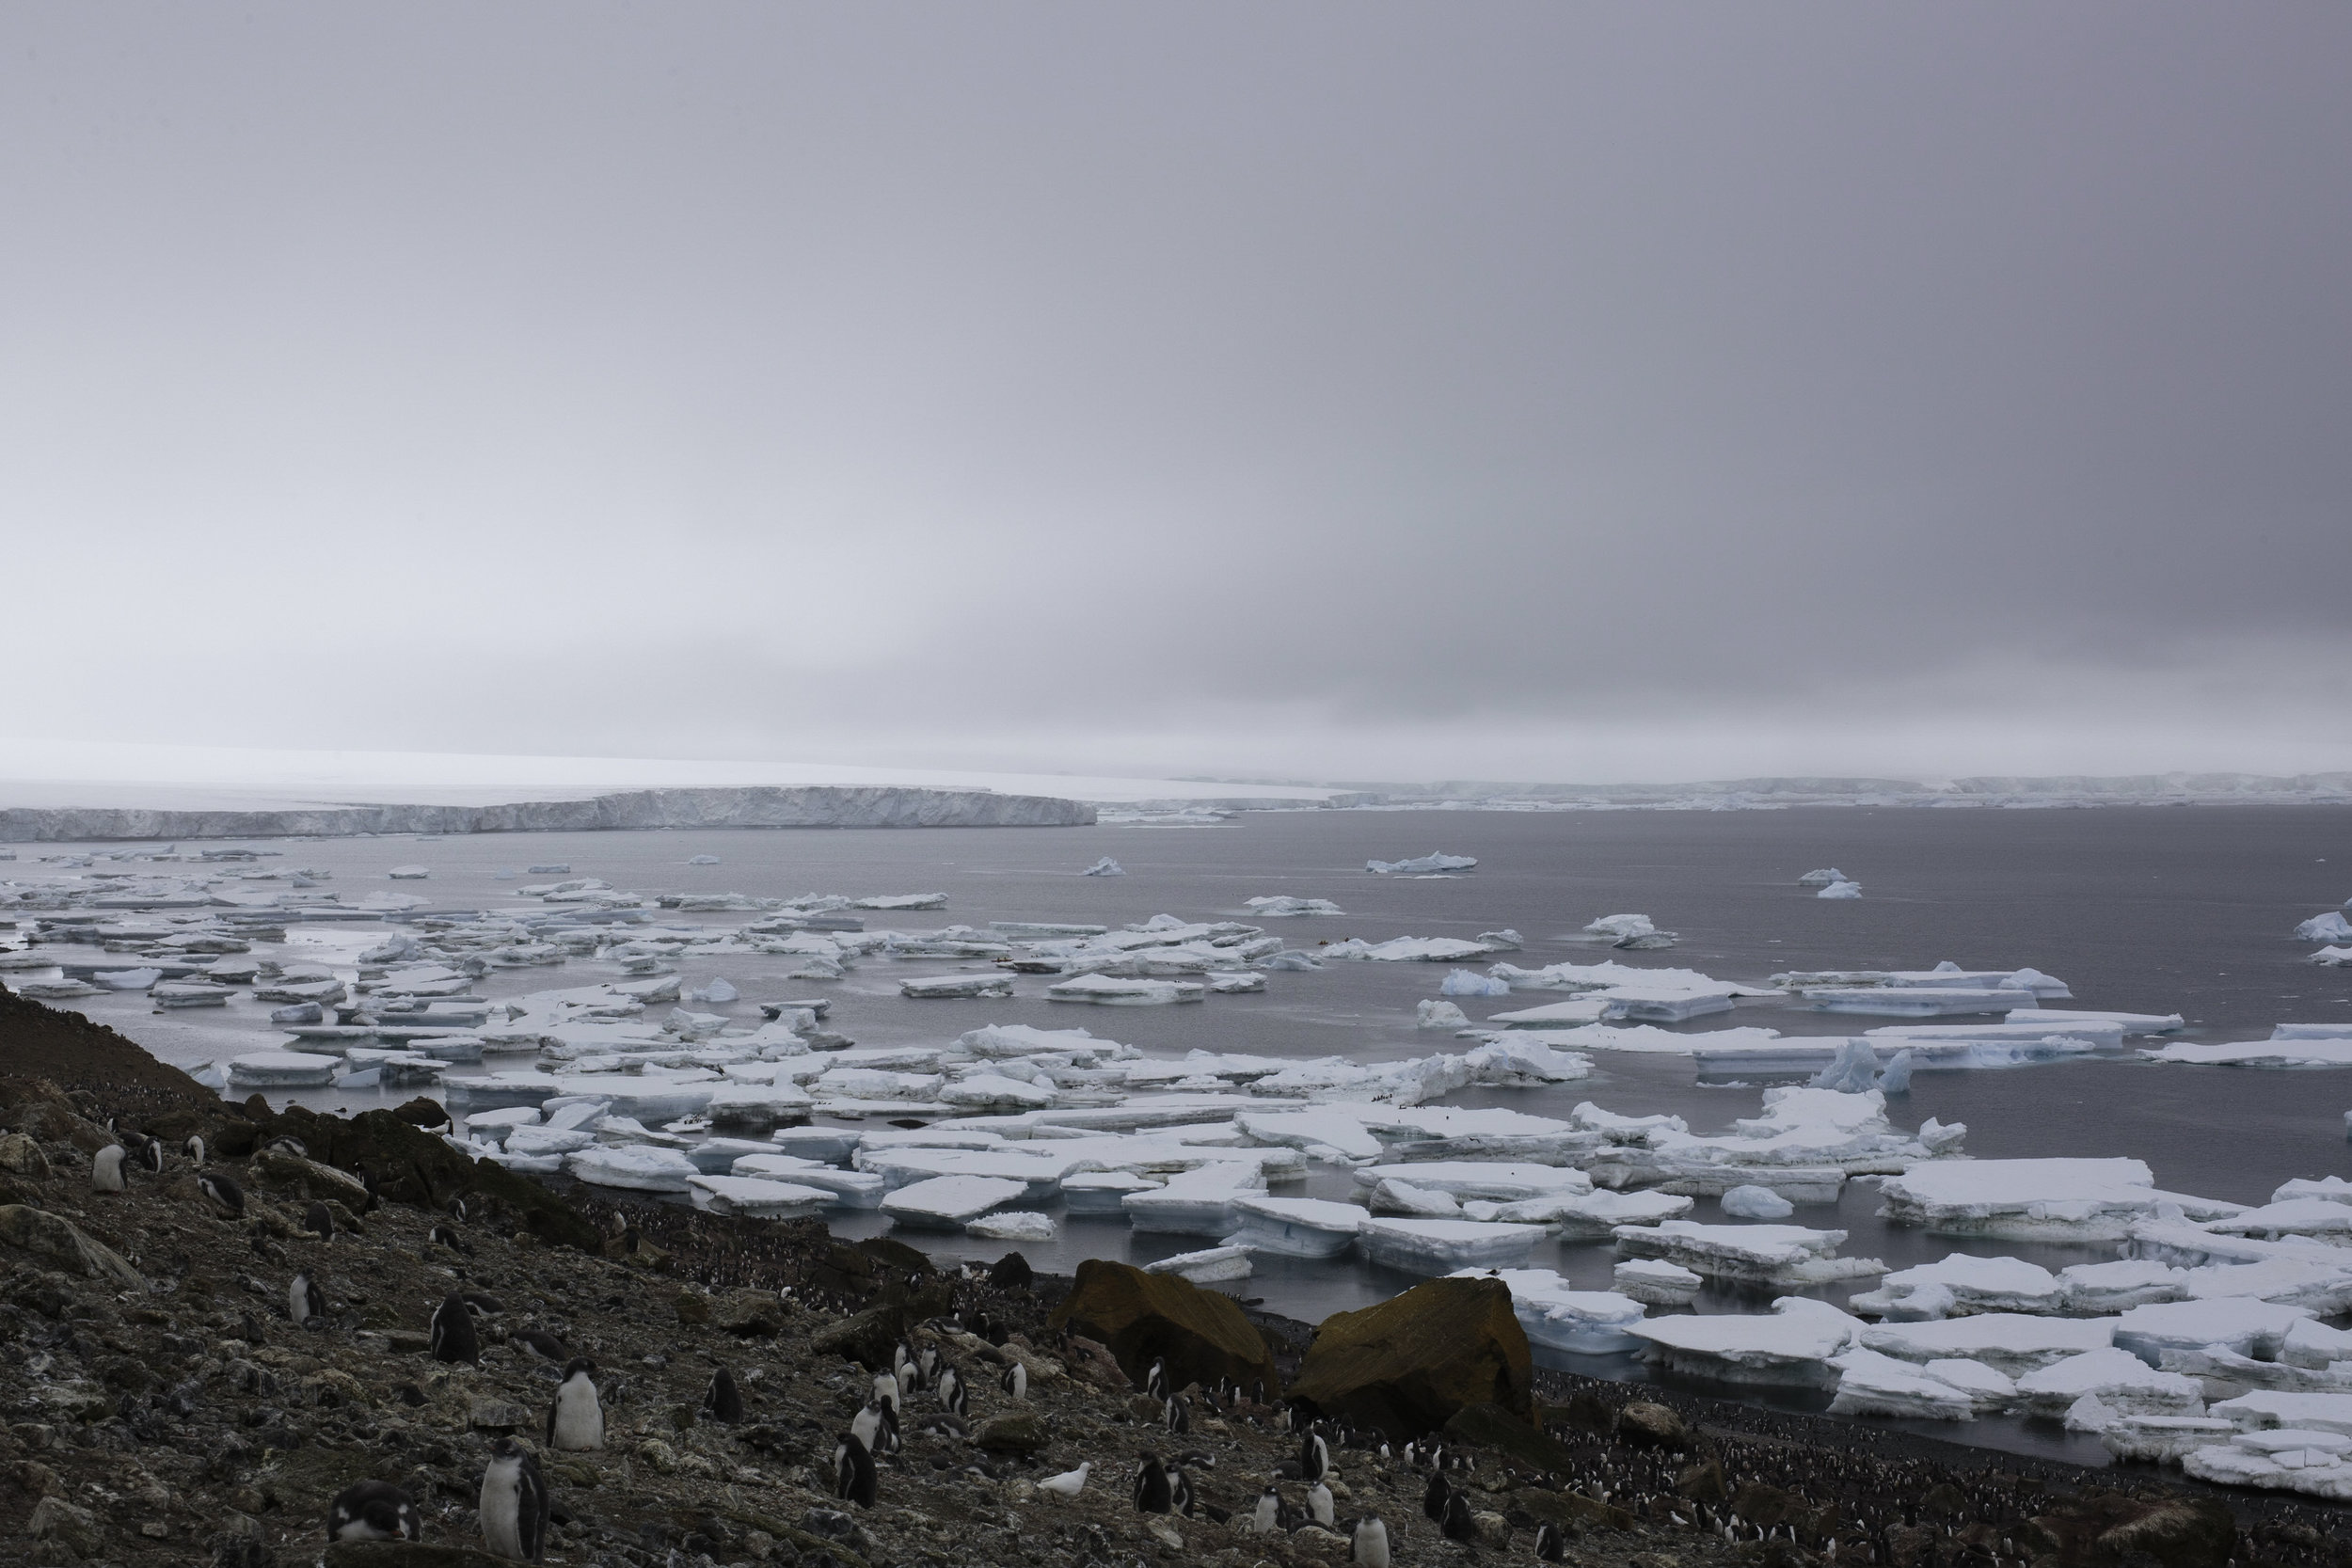 Large chunks of sea ice grounded at low tide.